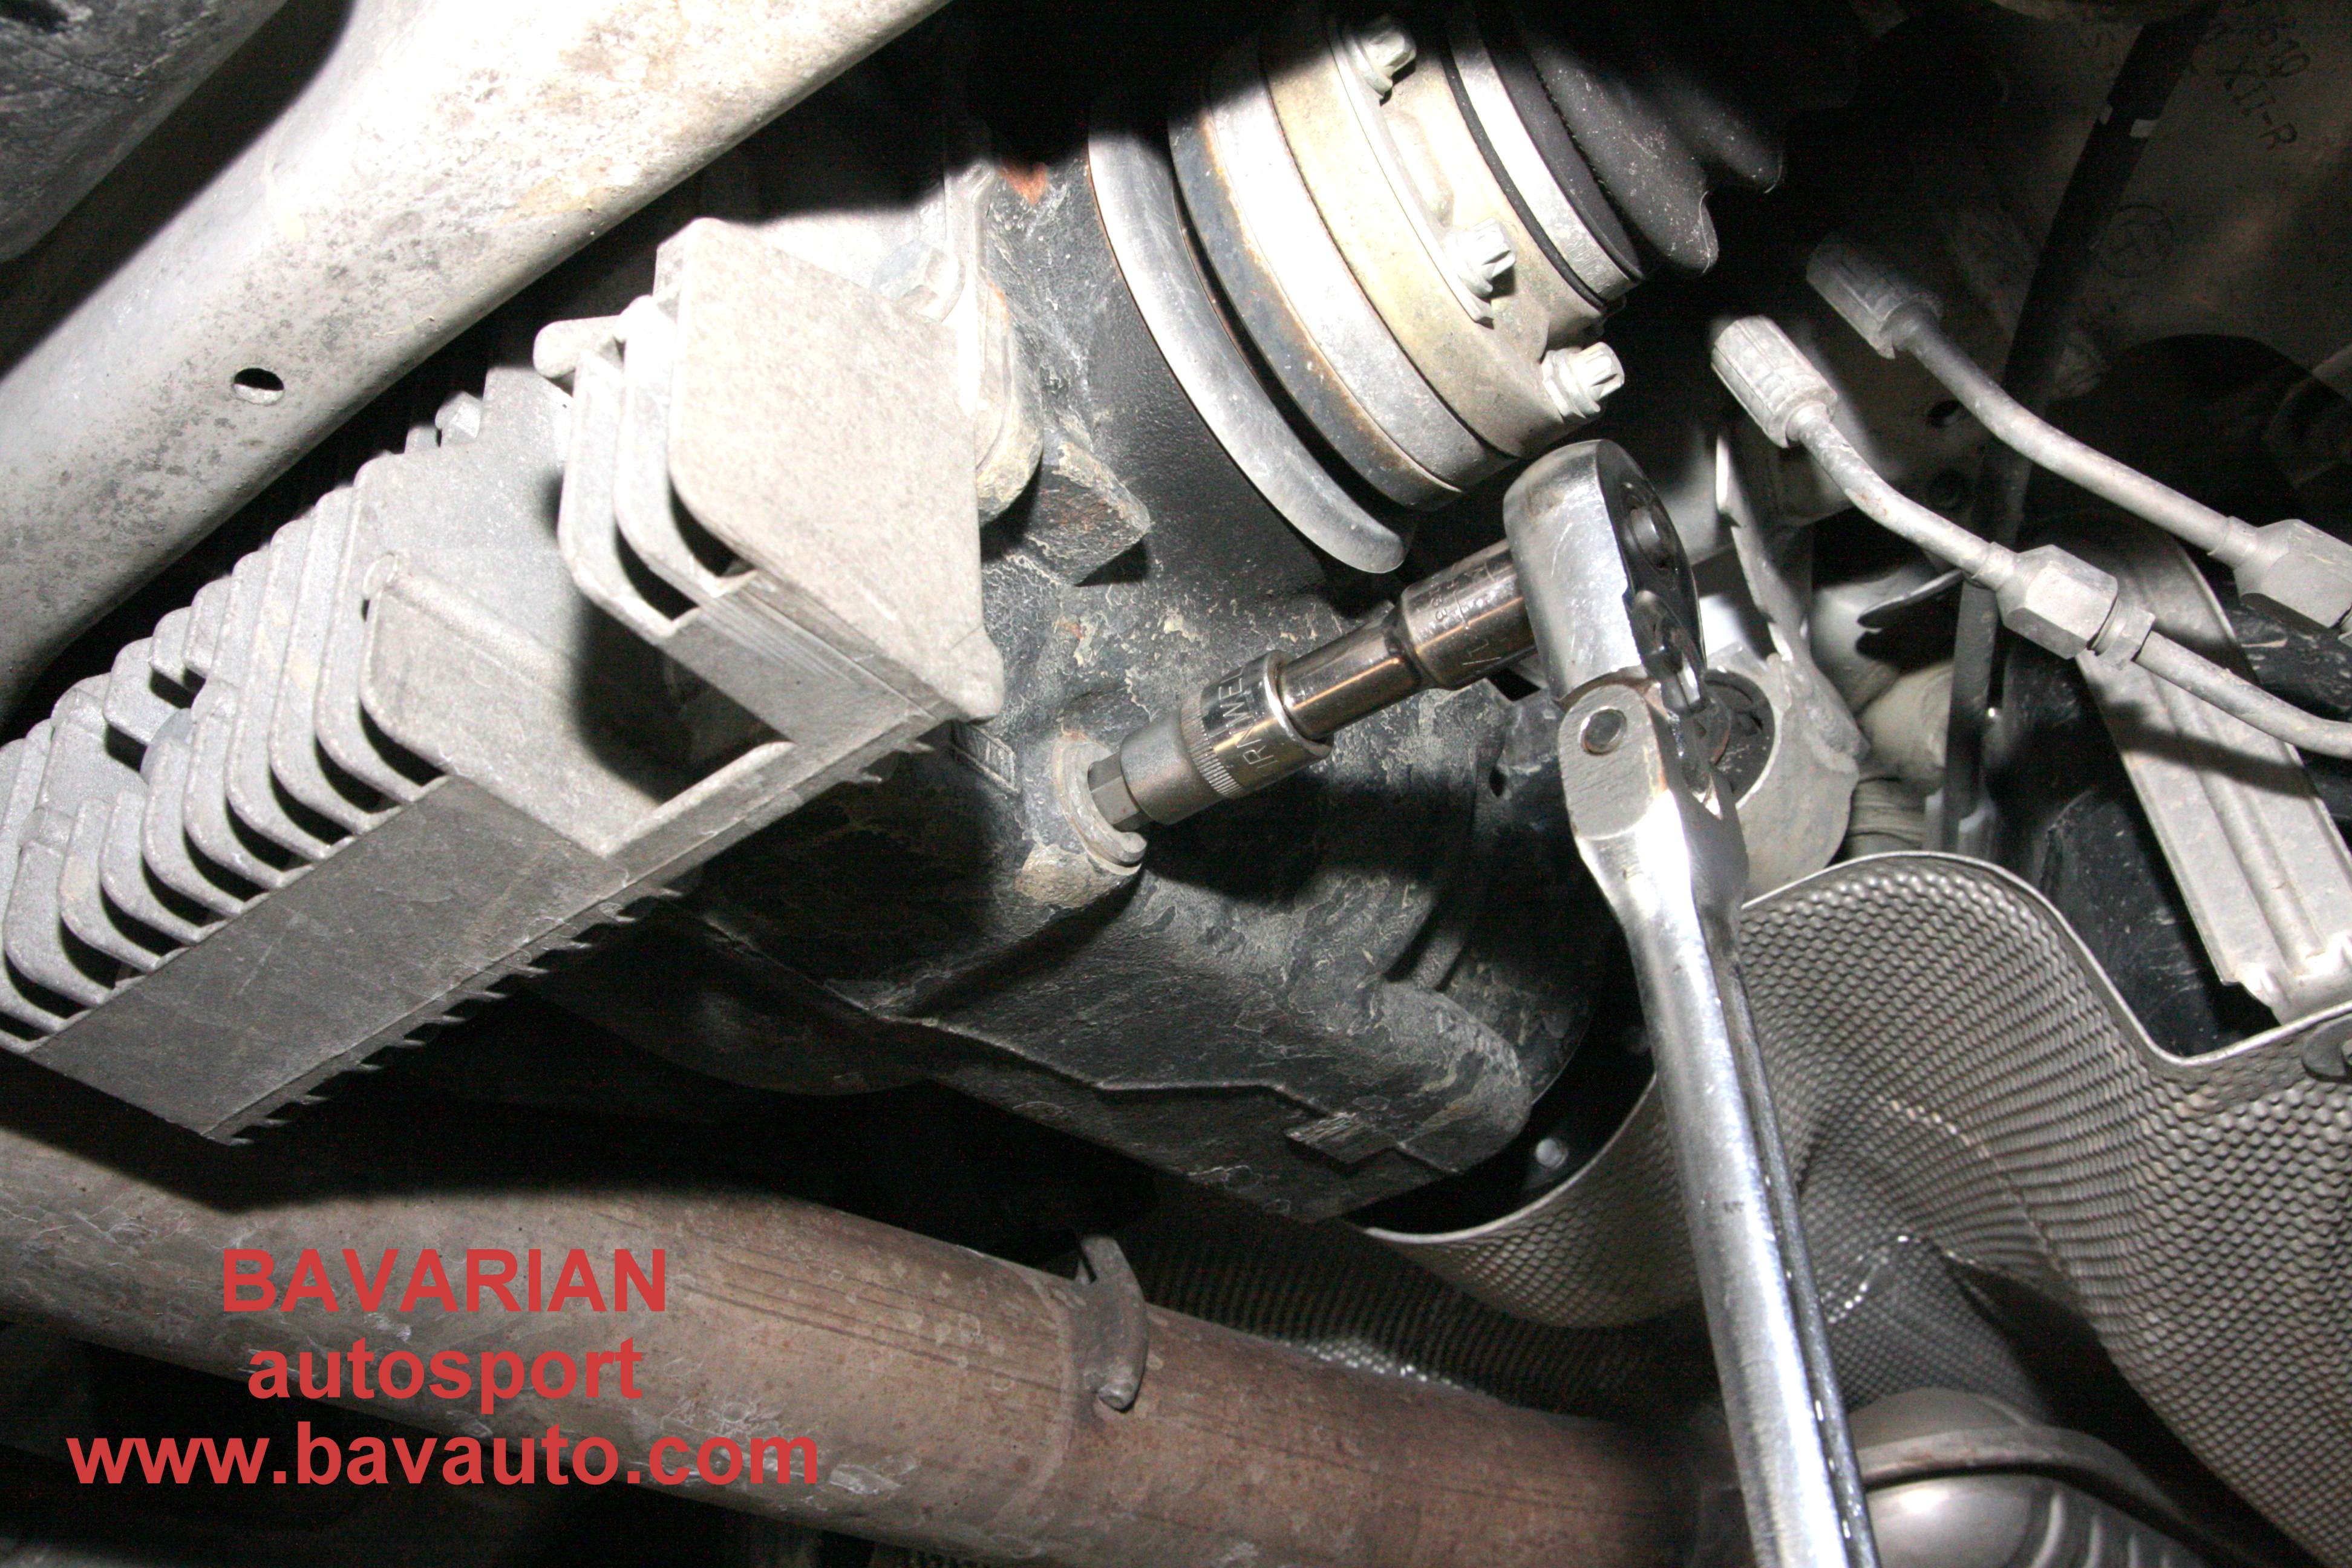 Bmw Diy Manual Transmission And Differential Fluid